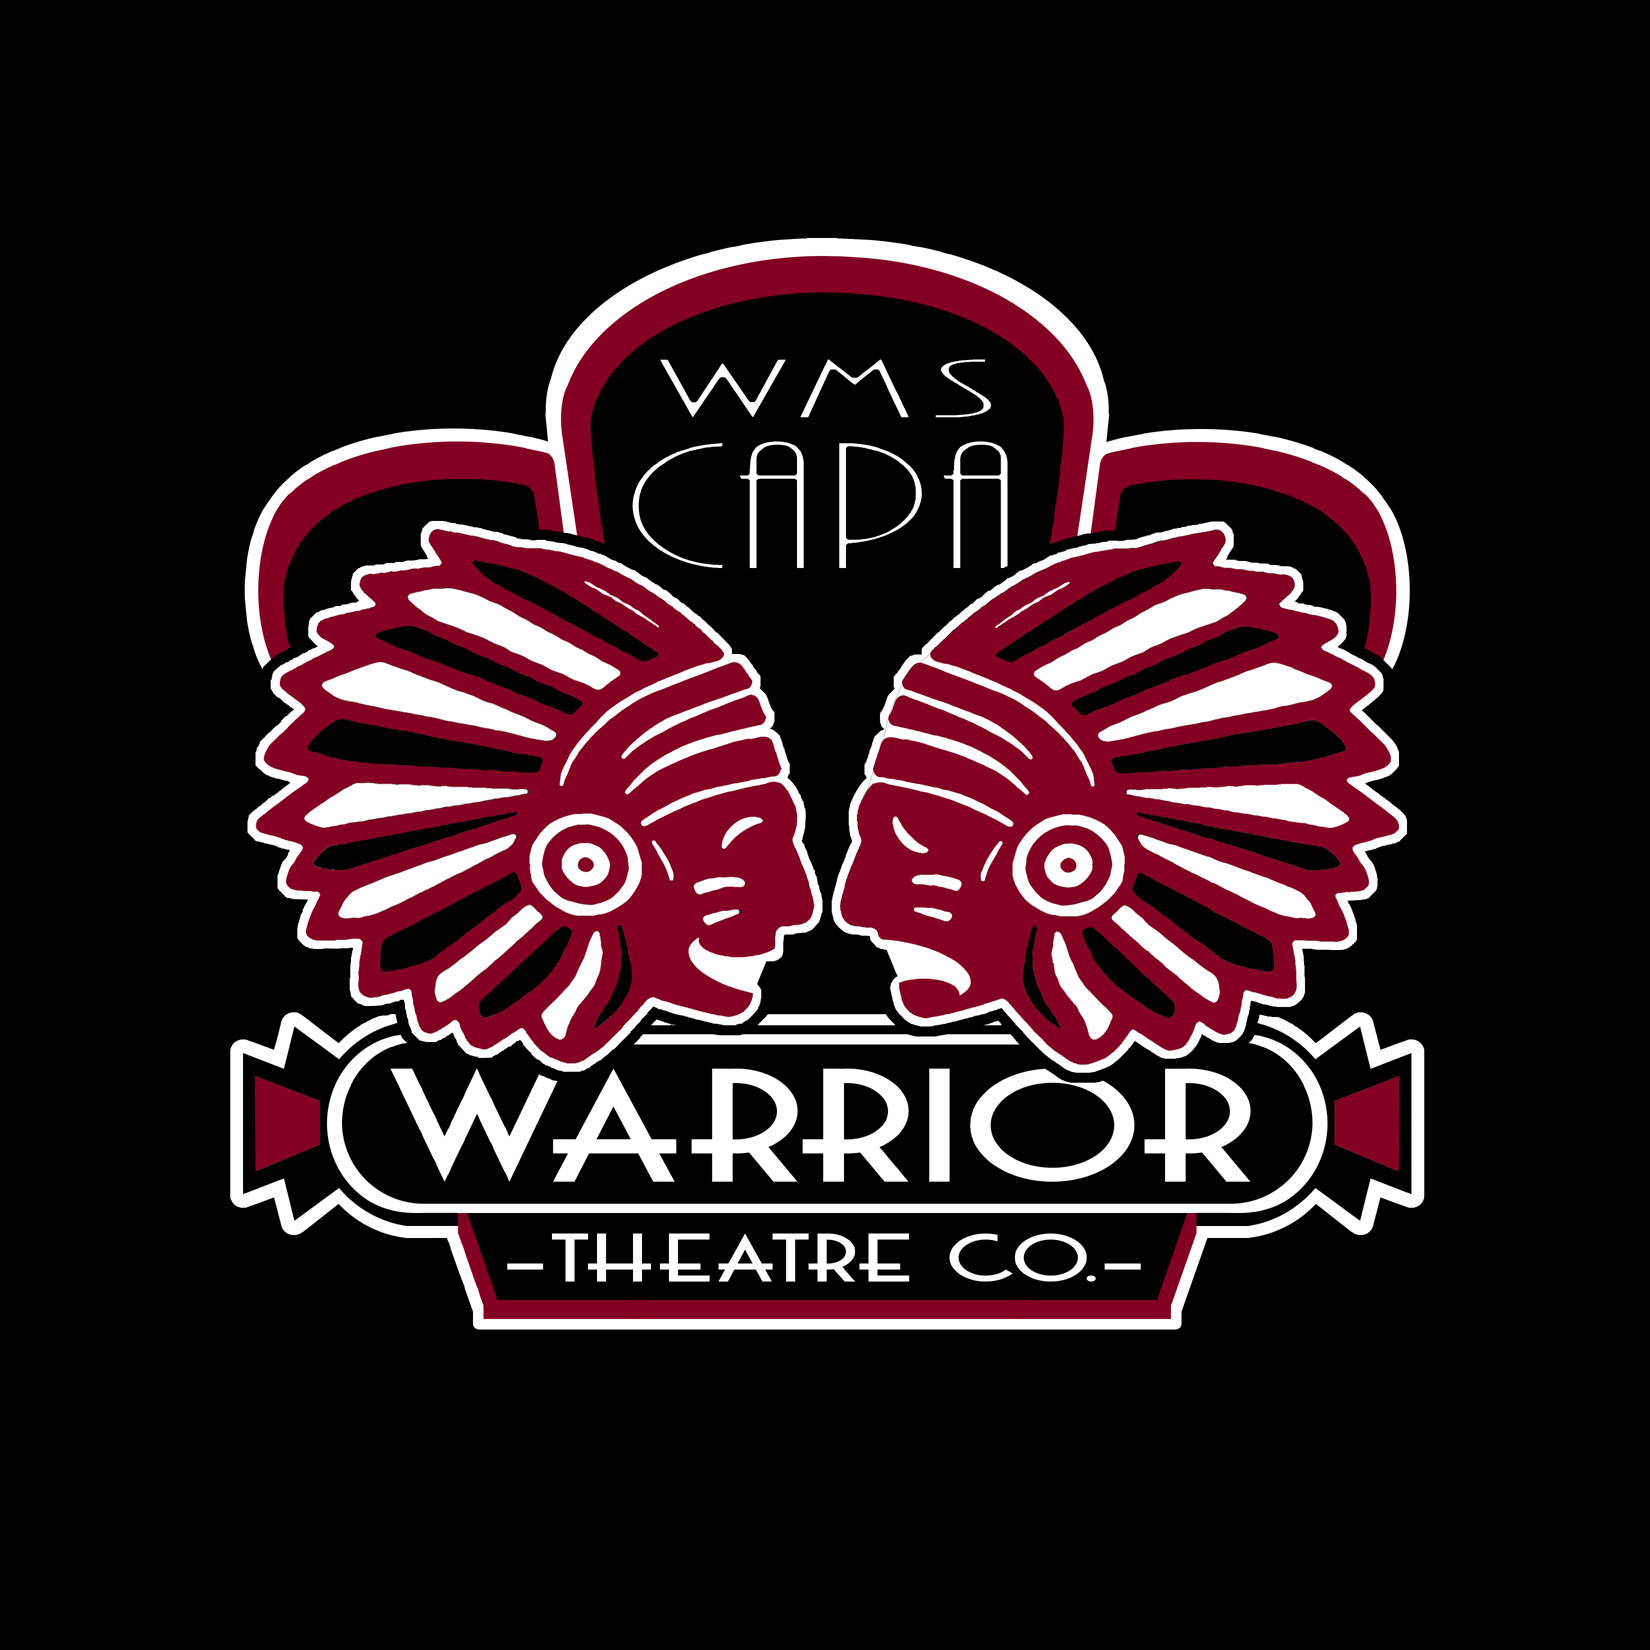 WARRIOR THEATRE CO.